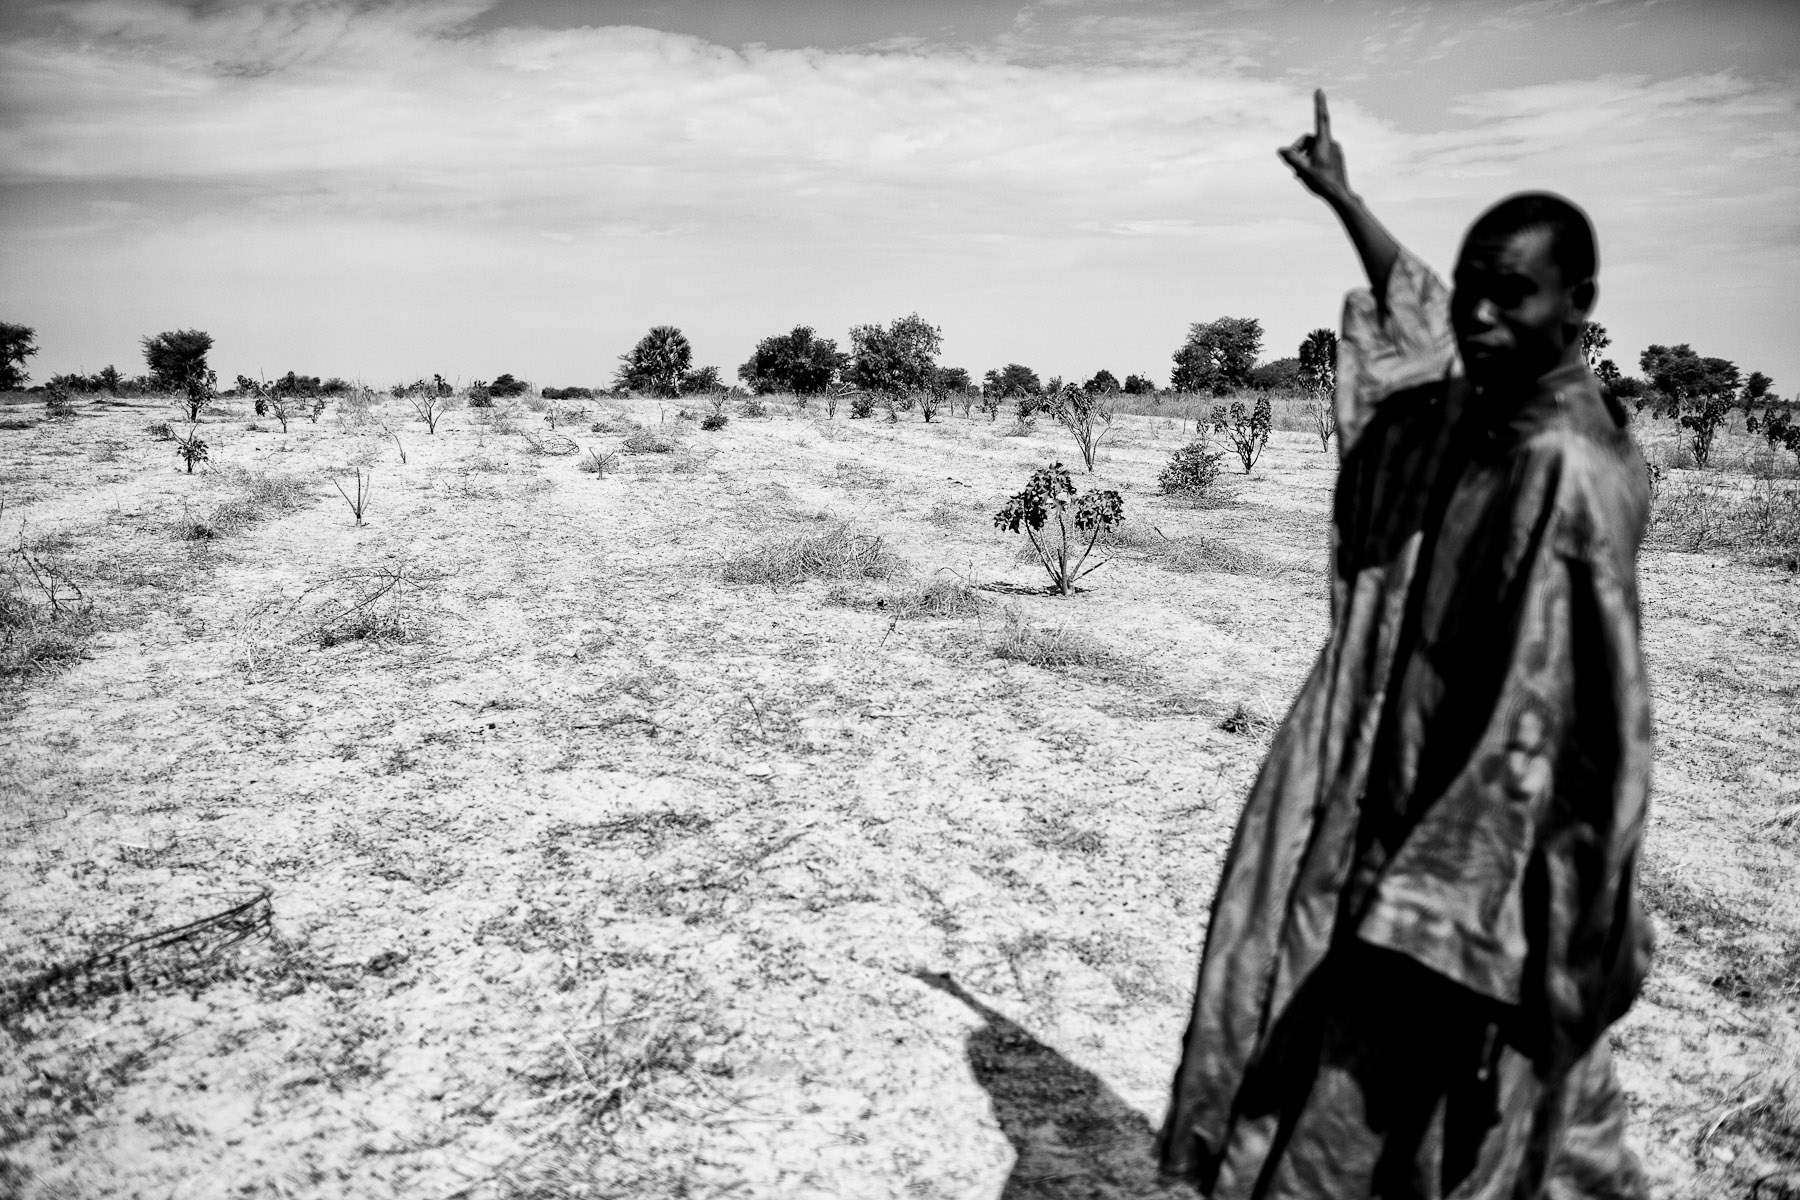 A villager shows the land near the village of Colobane, Senegal, that has been, presumed illegally, acquired by the Italian company African National Oil Corporation (ANOC) to grow Jatropha plants for biofuels, January 10, 2014. In Senegal, traditional land, including majority of the land in the region of Kaolac, is not owned by the individual or a family, but is a property of local community. Therefore, anybody who wants to legally sell or buy the land needs the approval of the local Council. At this moment, there is no evidence that ANOC gained approval from the Council for their land deals, which means that the legality of their ownership over the land is seriously questioned. Furthermore, the land deals have been done in a very non-transparent manner with villagers signing blank or uncompleted papers as their agreement for selling the land. None of the villagers received a copy of the document they signed.